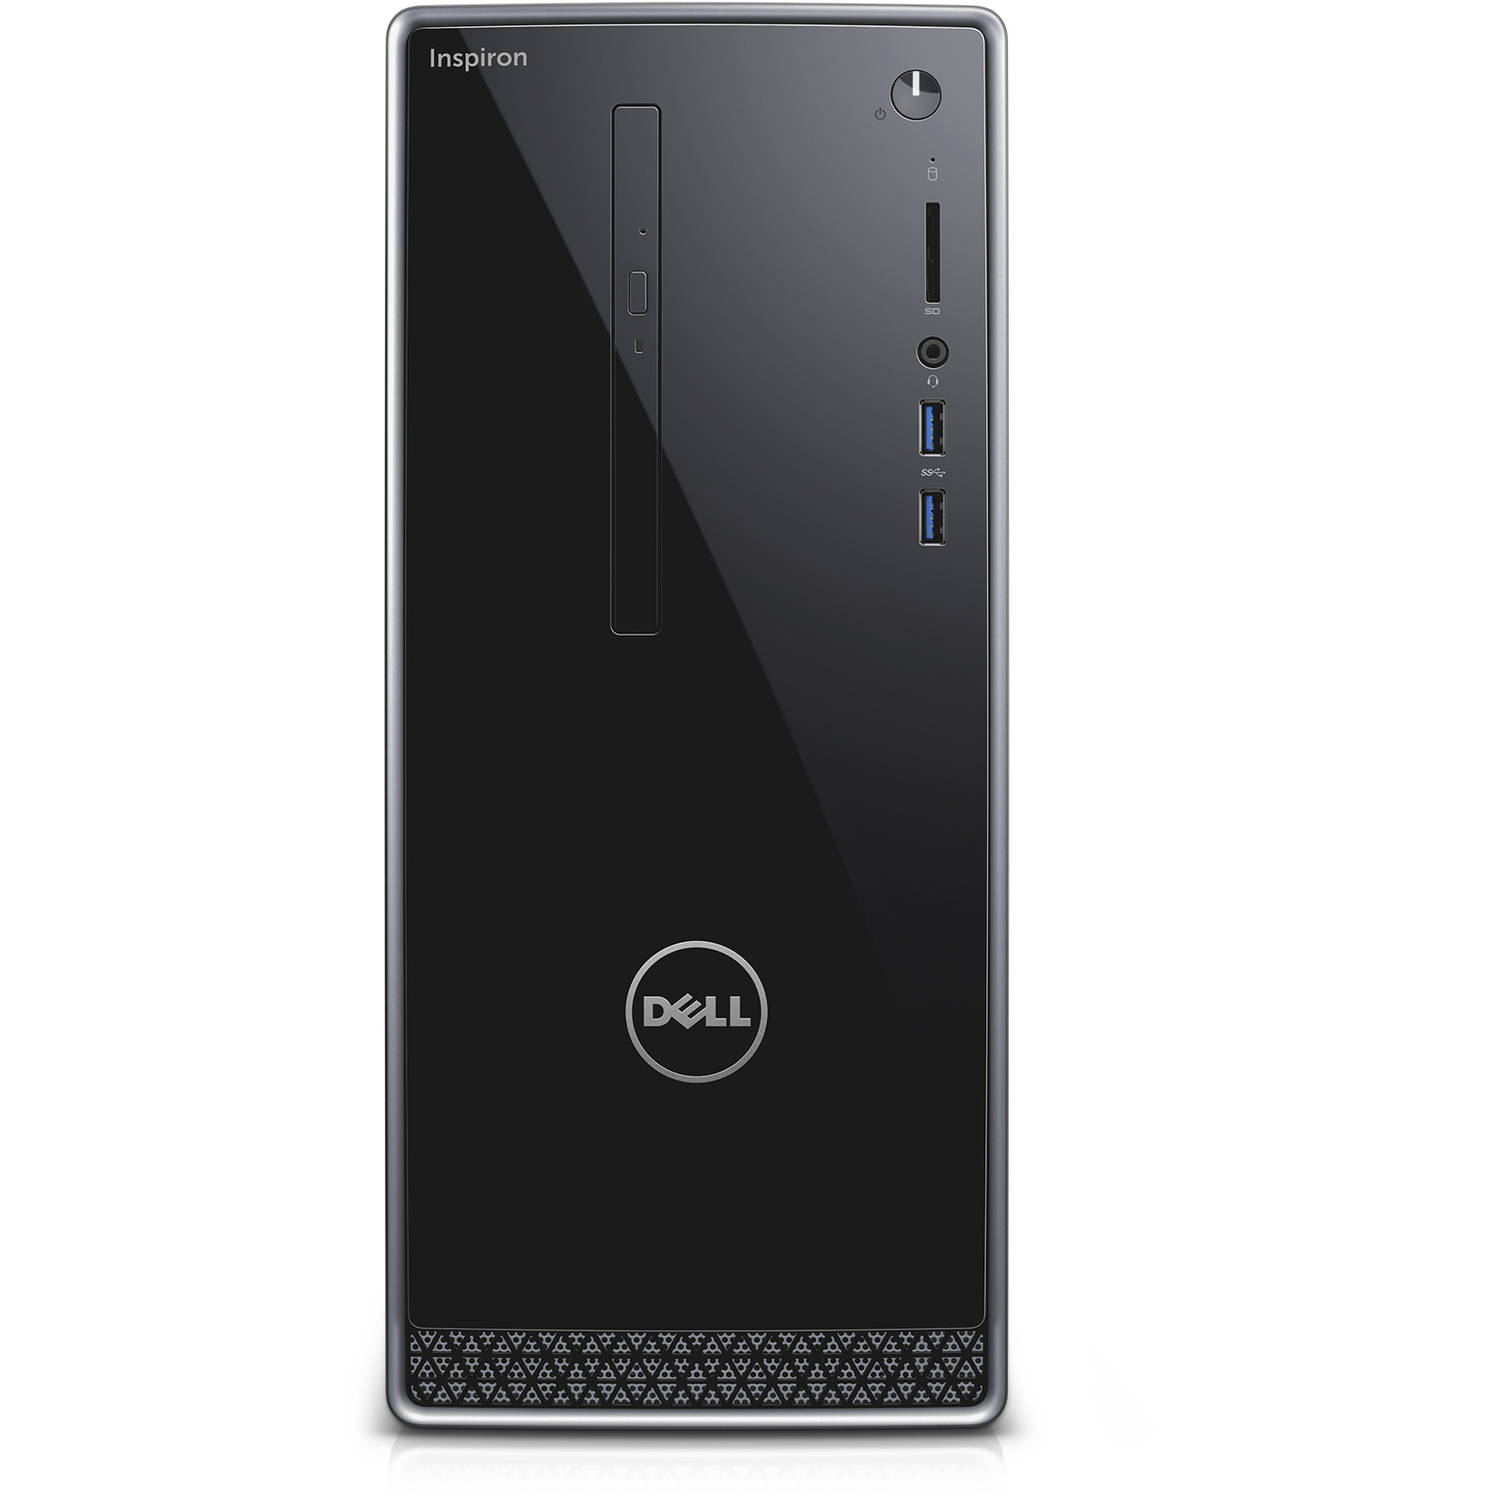 Dell - Inspiron 3650 Desktop - Intel Core i3 - 6GB Memory - 1